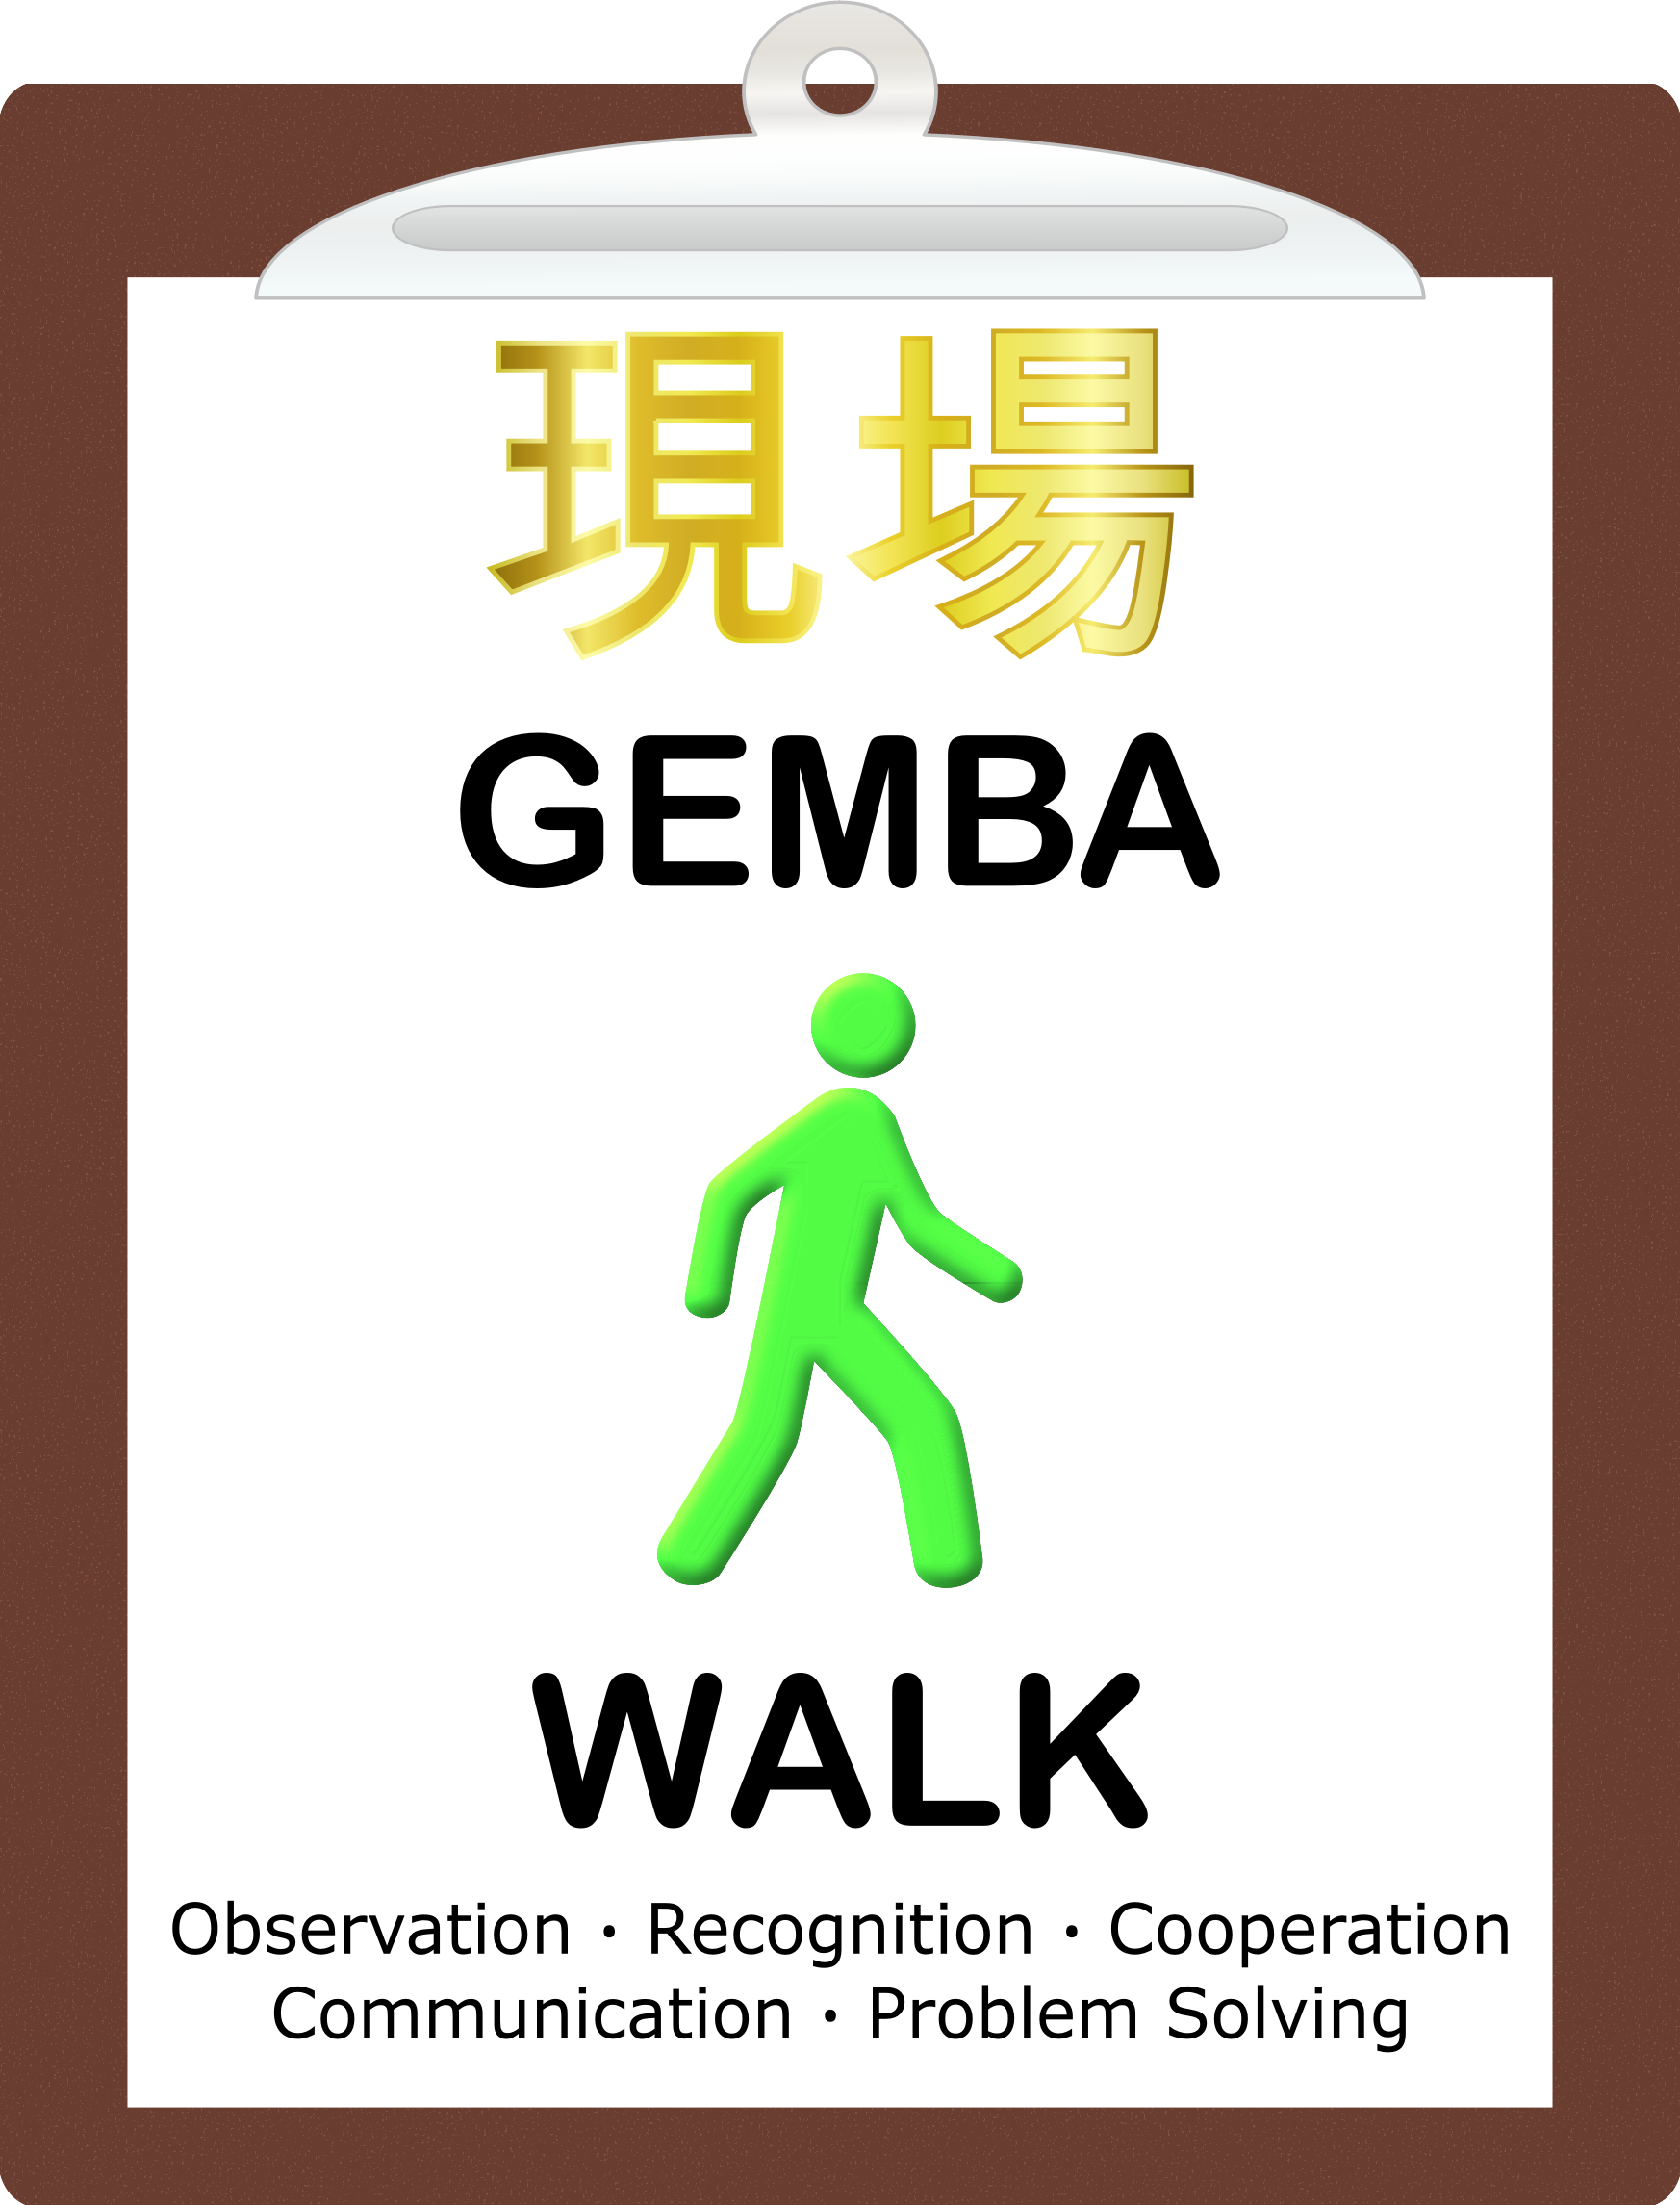 Gemba Walk by Arvin61r58